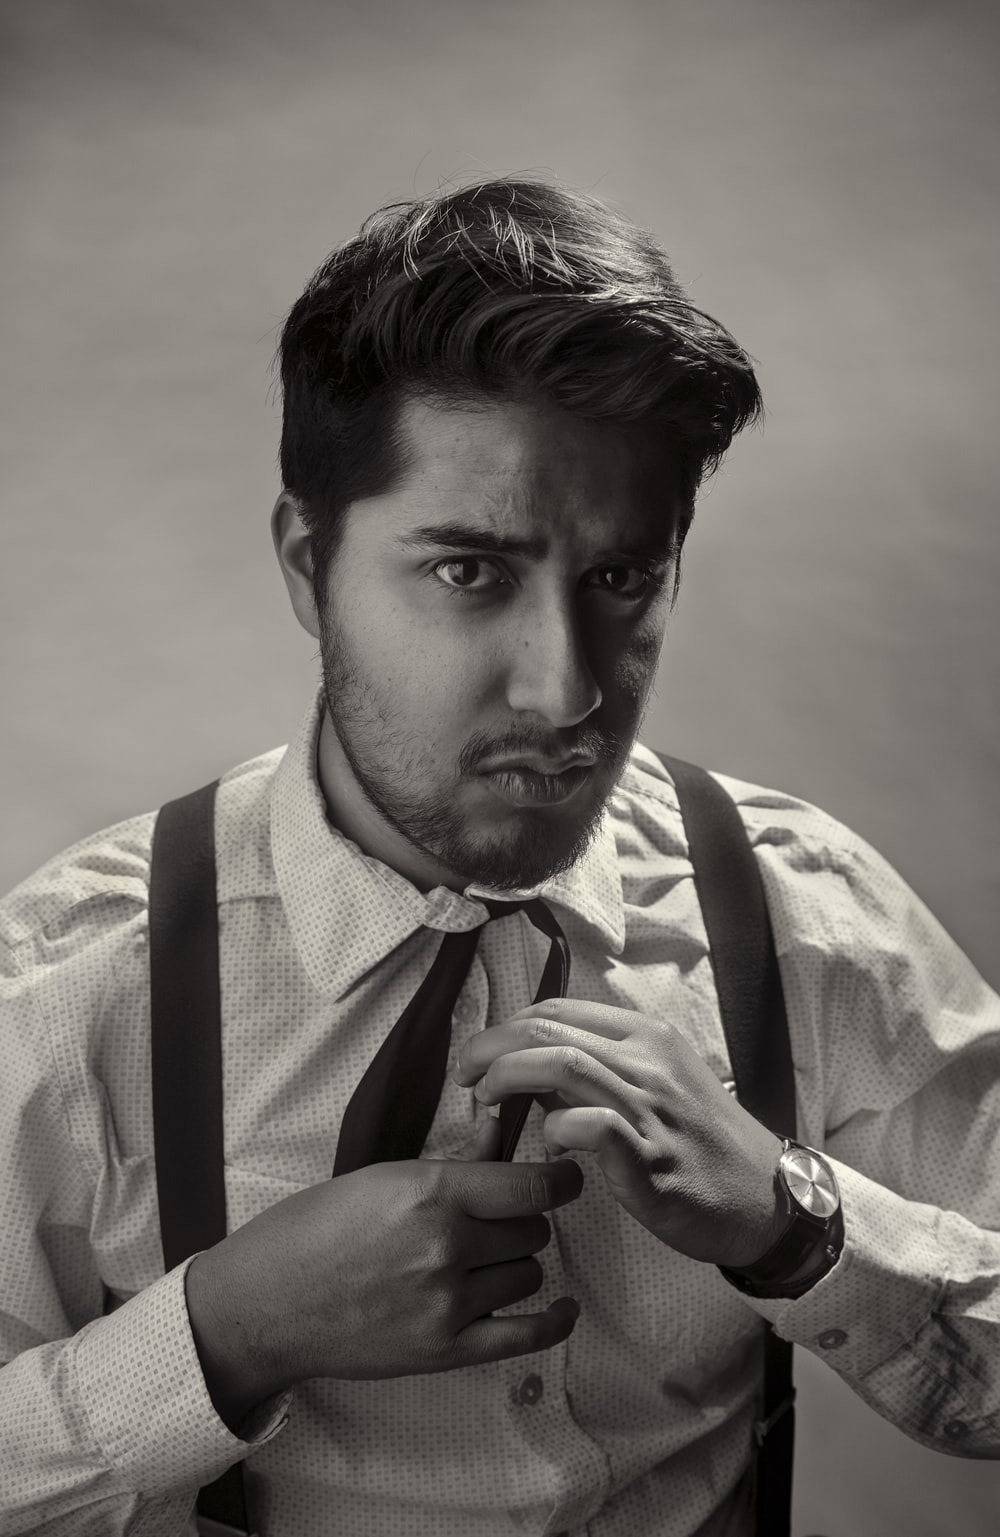 grayscale photo of man in dress shirt